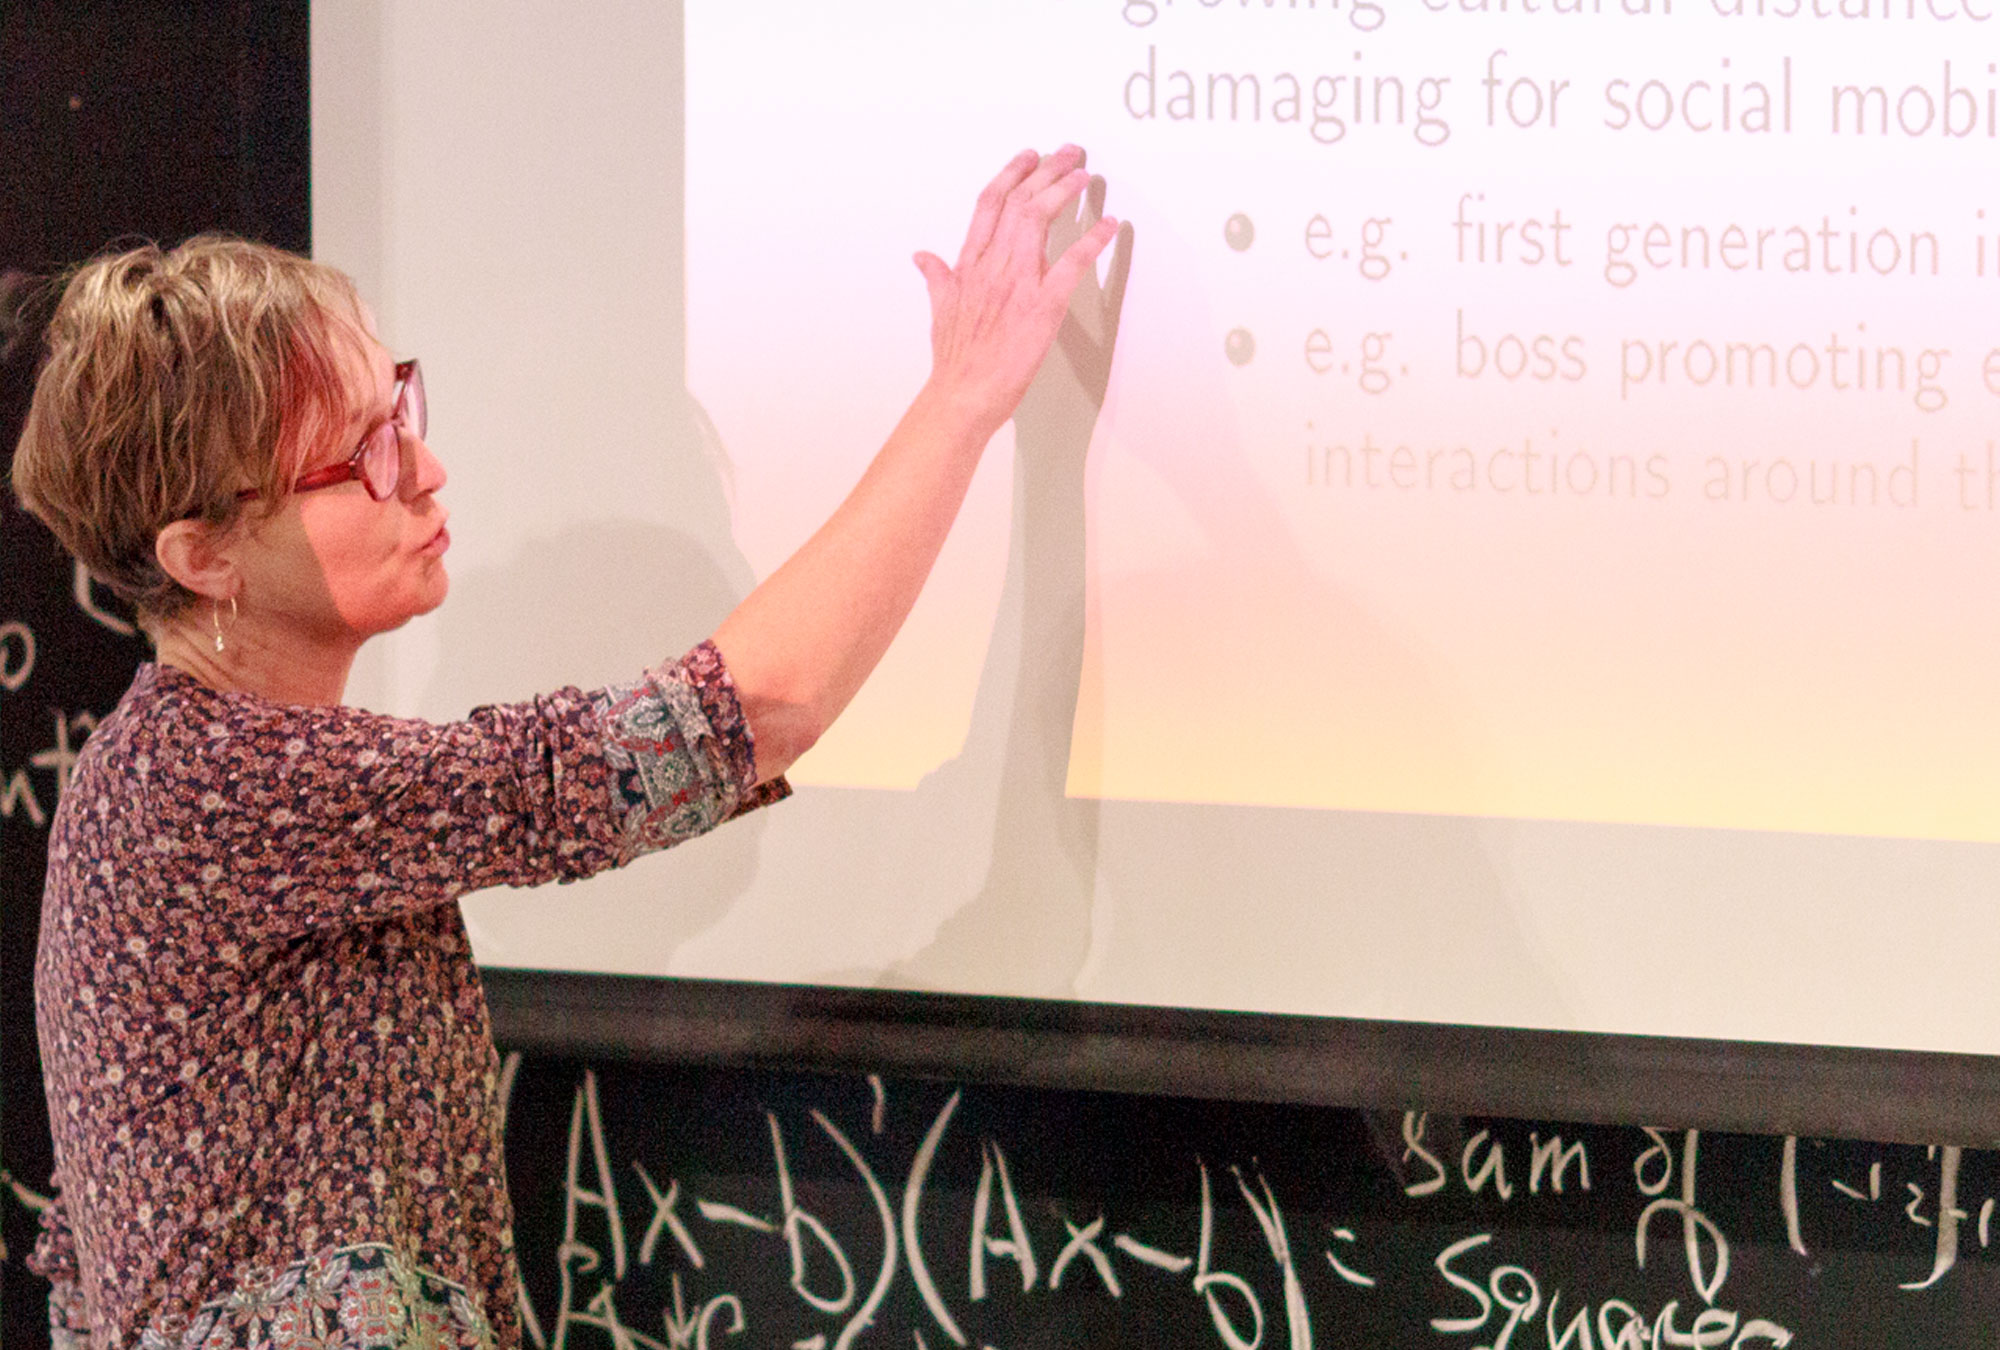 Marianne Bertrand lectures in front of a projector screen